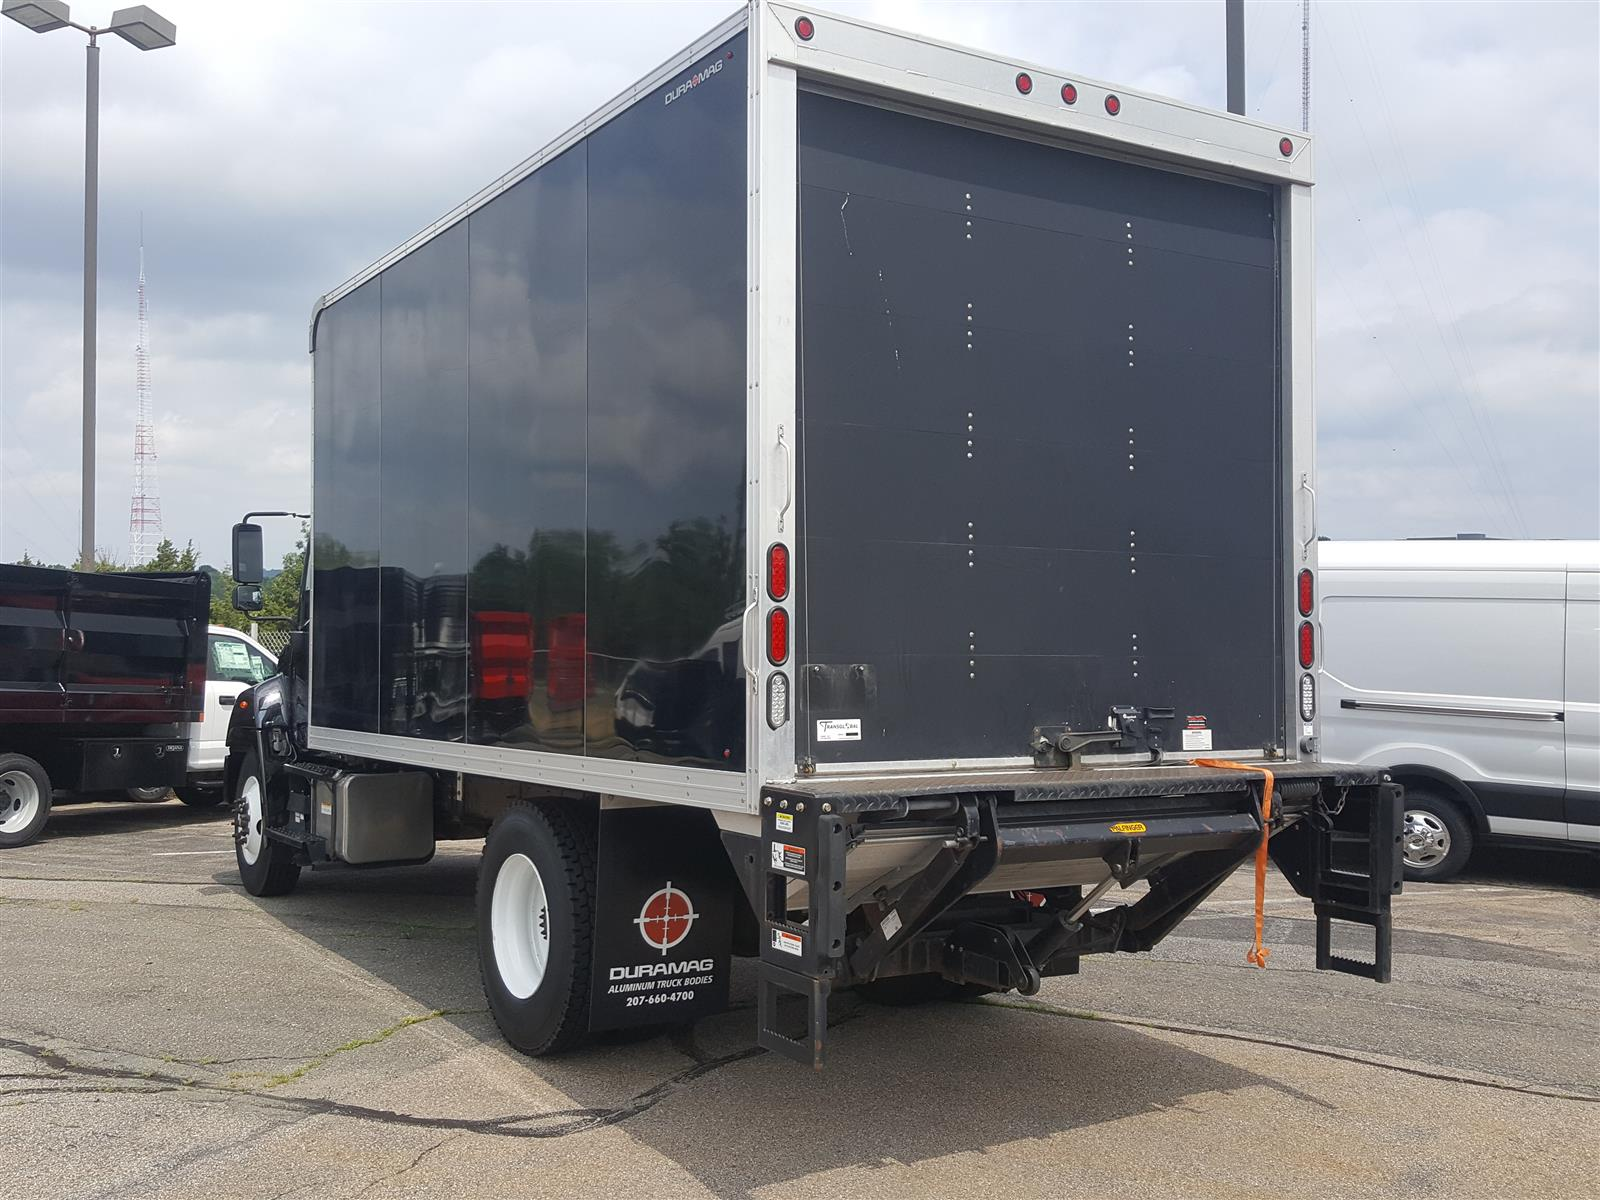 2014 Hino Truck Regular Cab DRW, 25,950# GVW, DuraMag Body, Tuckaway Liftgate, 15,040 miles! #KB872461 - photo 1